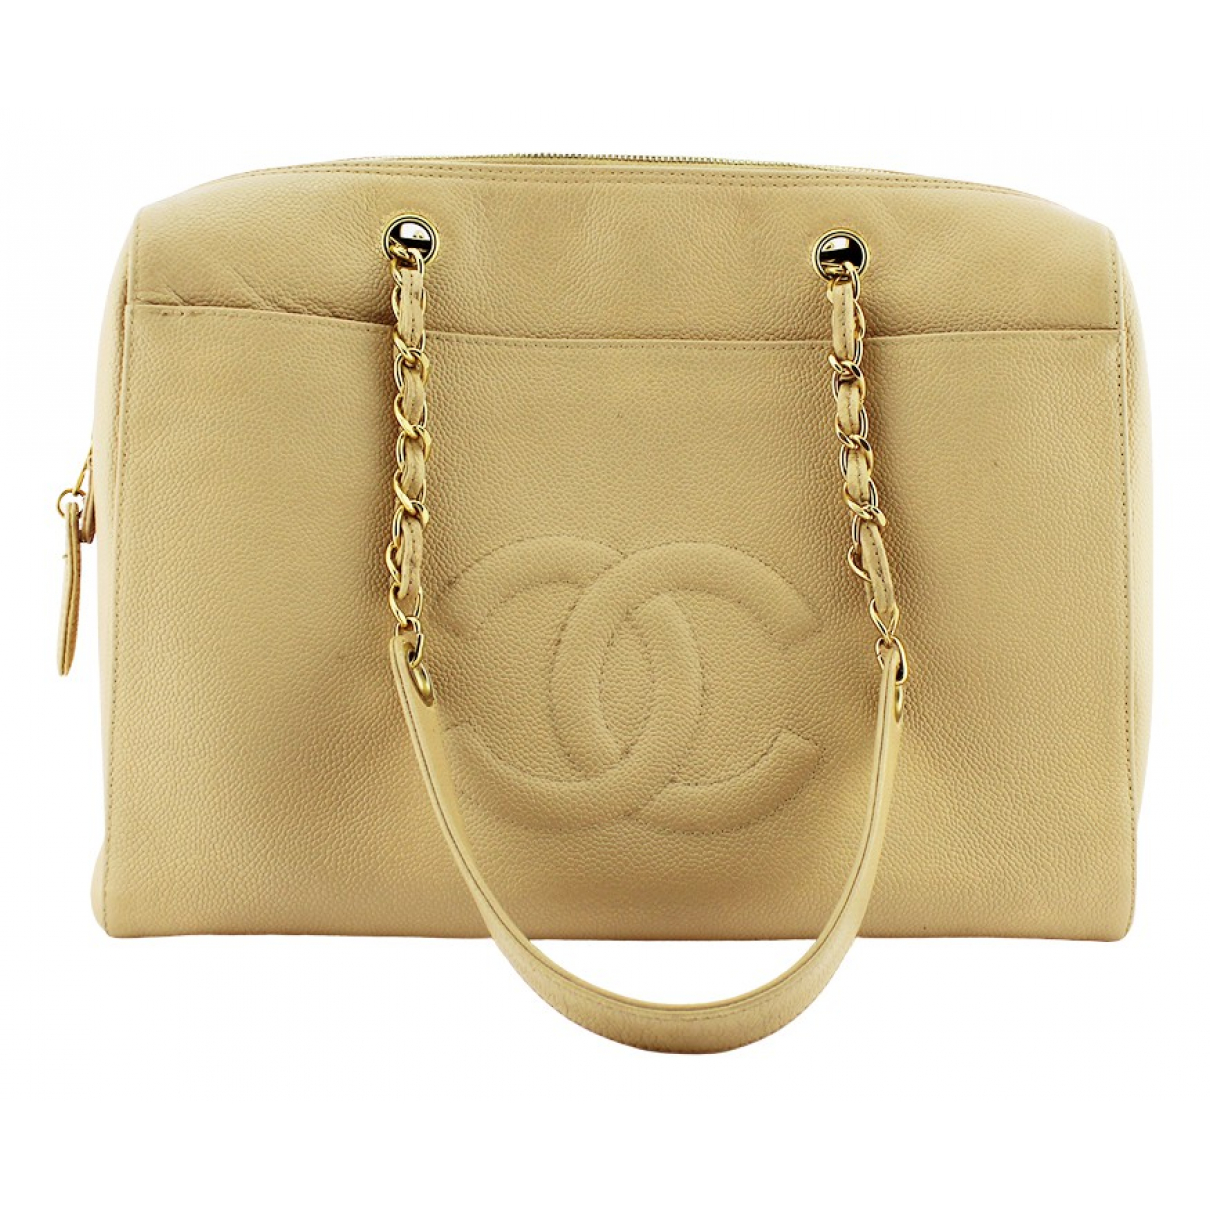 Chanel N Beige Leather handbag for Women N